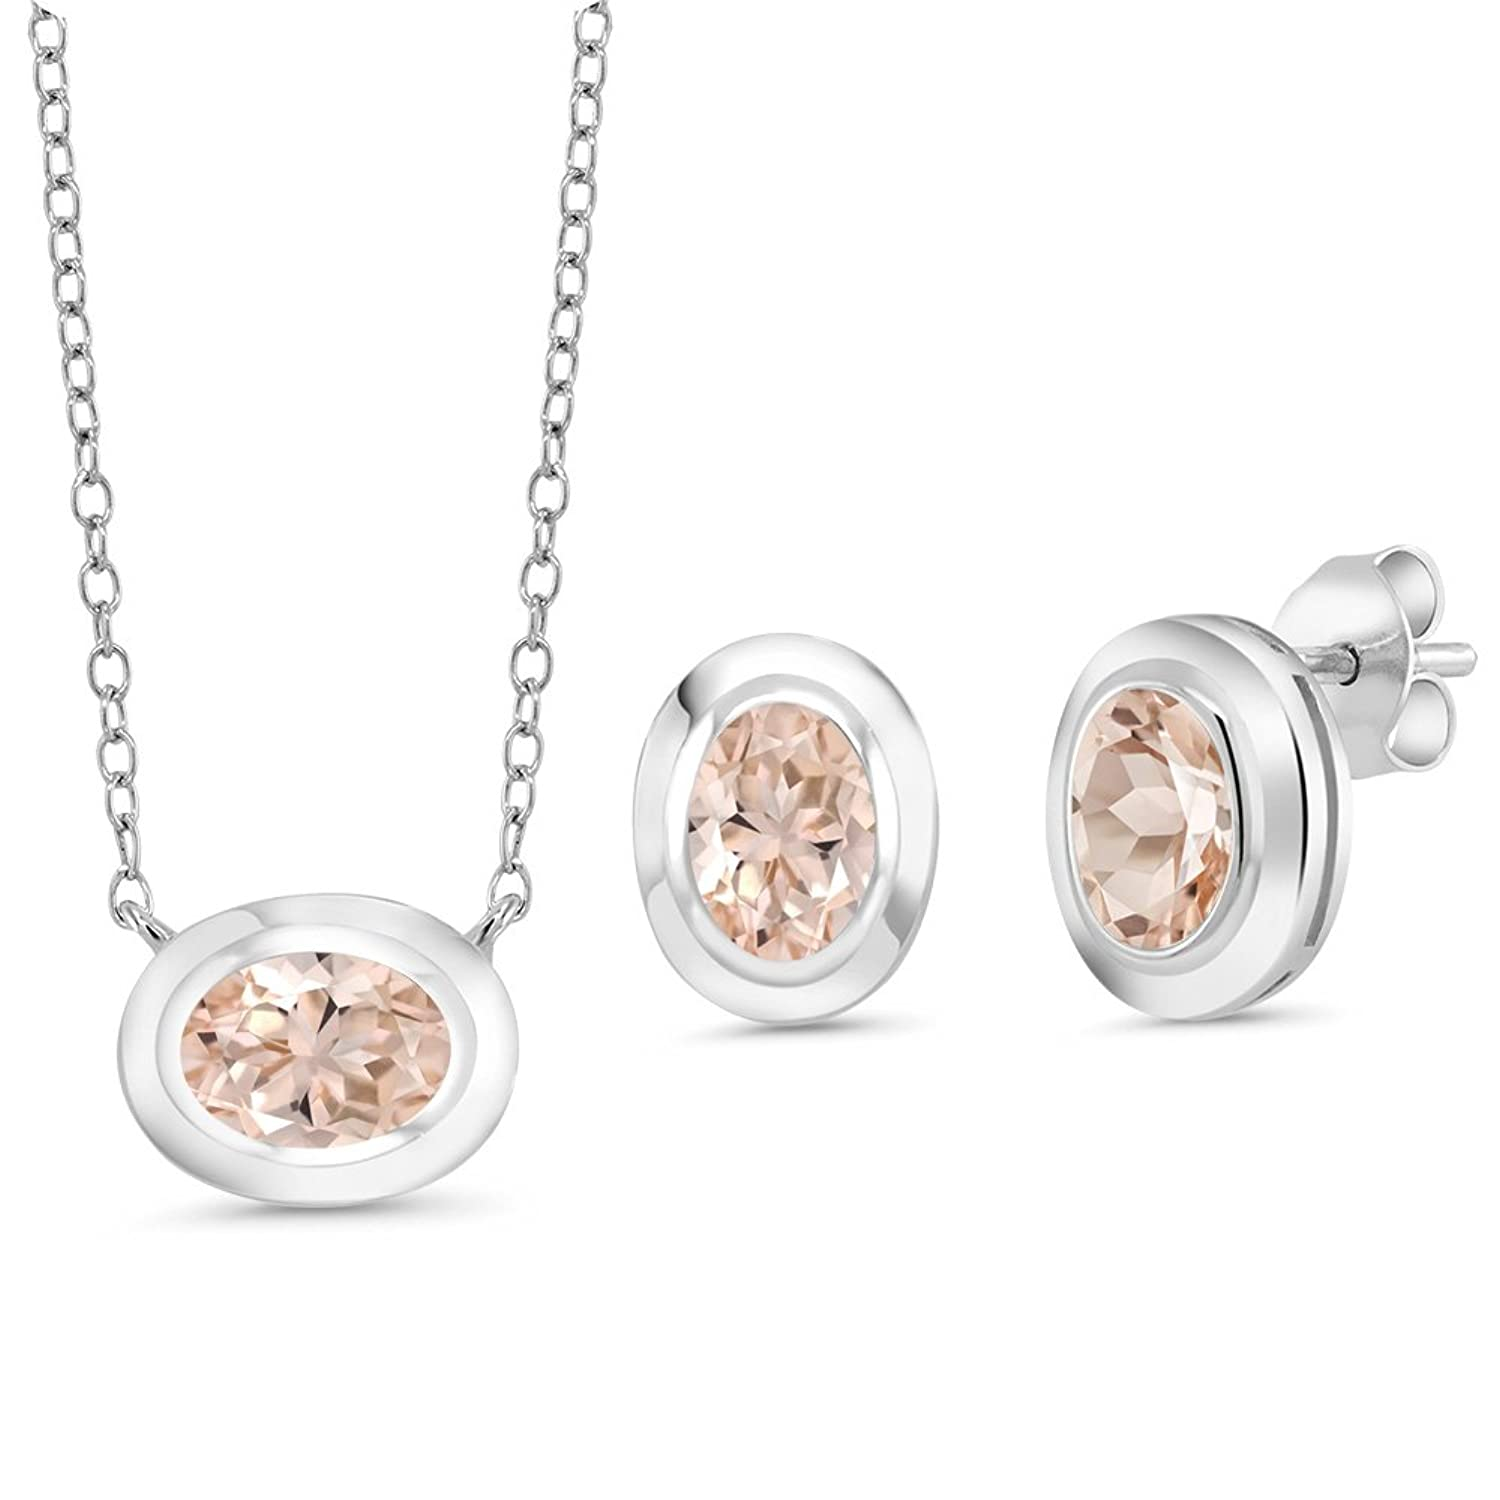 1.95 Ct Oval Peach Morganite 925 Sterling Silver Pendant Earrings Set With Chain